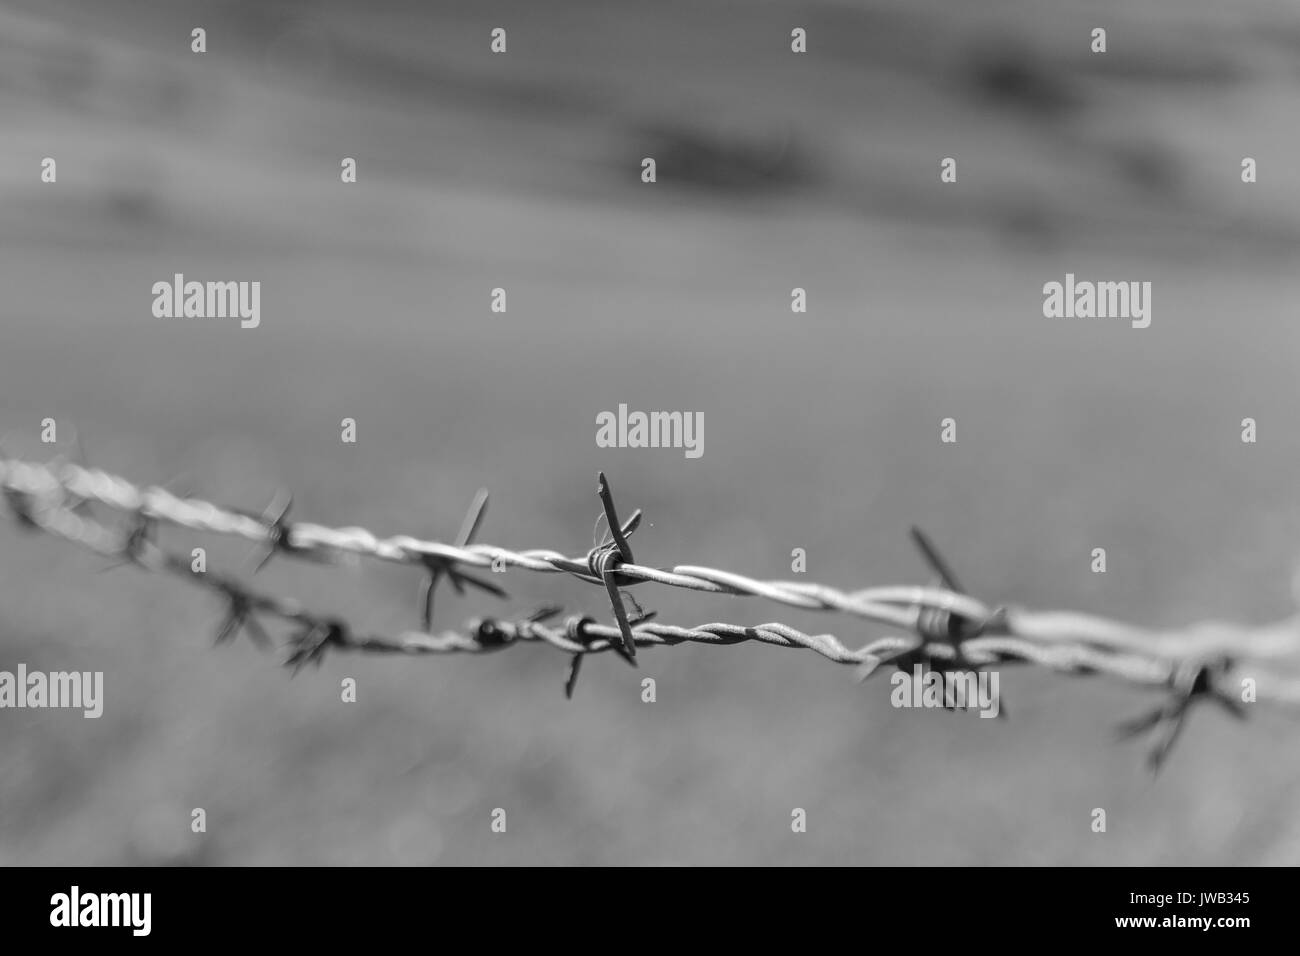 Black and white close up of a barbed wire with blurred background. Landscape format. - Stock Image